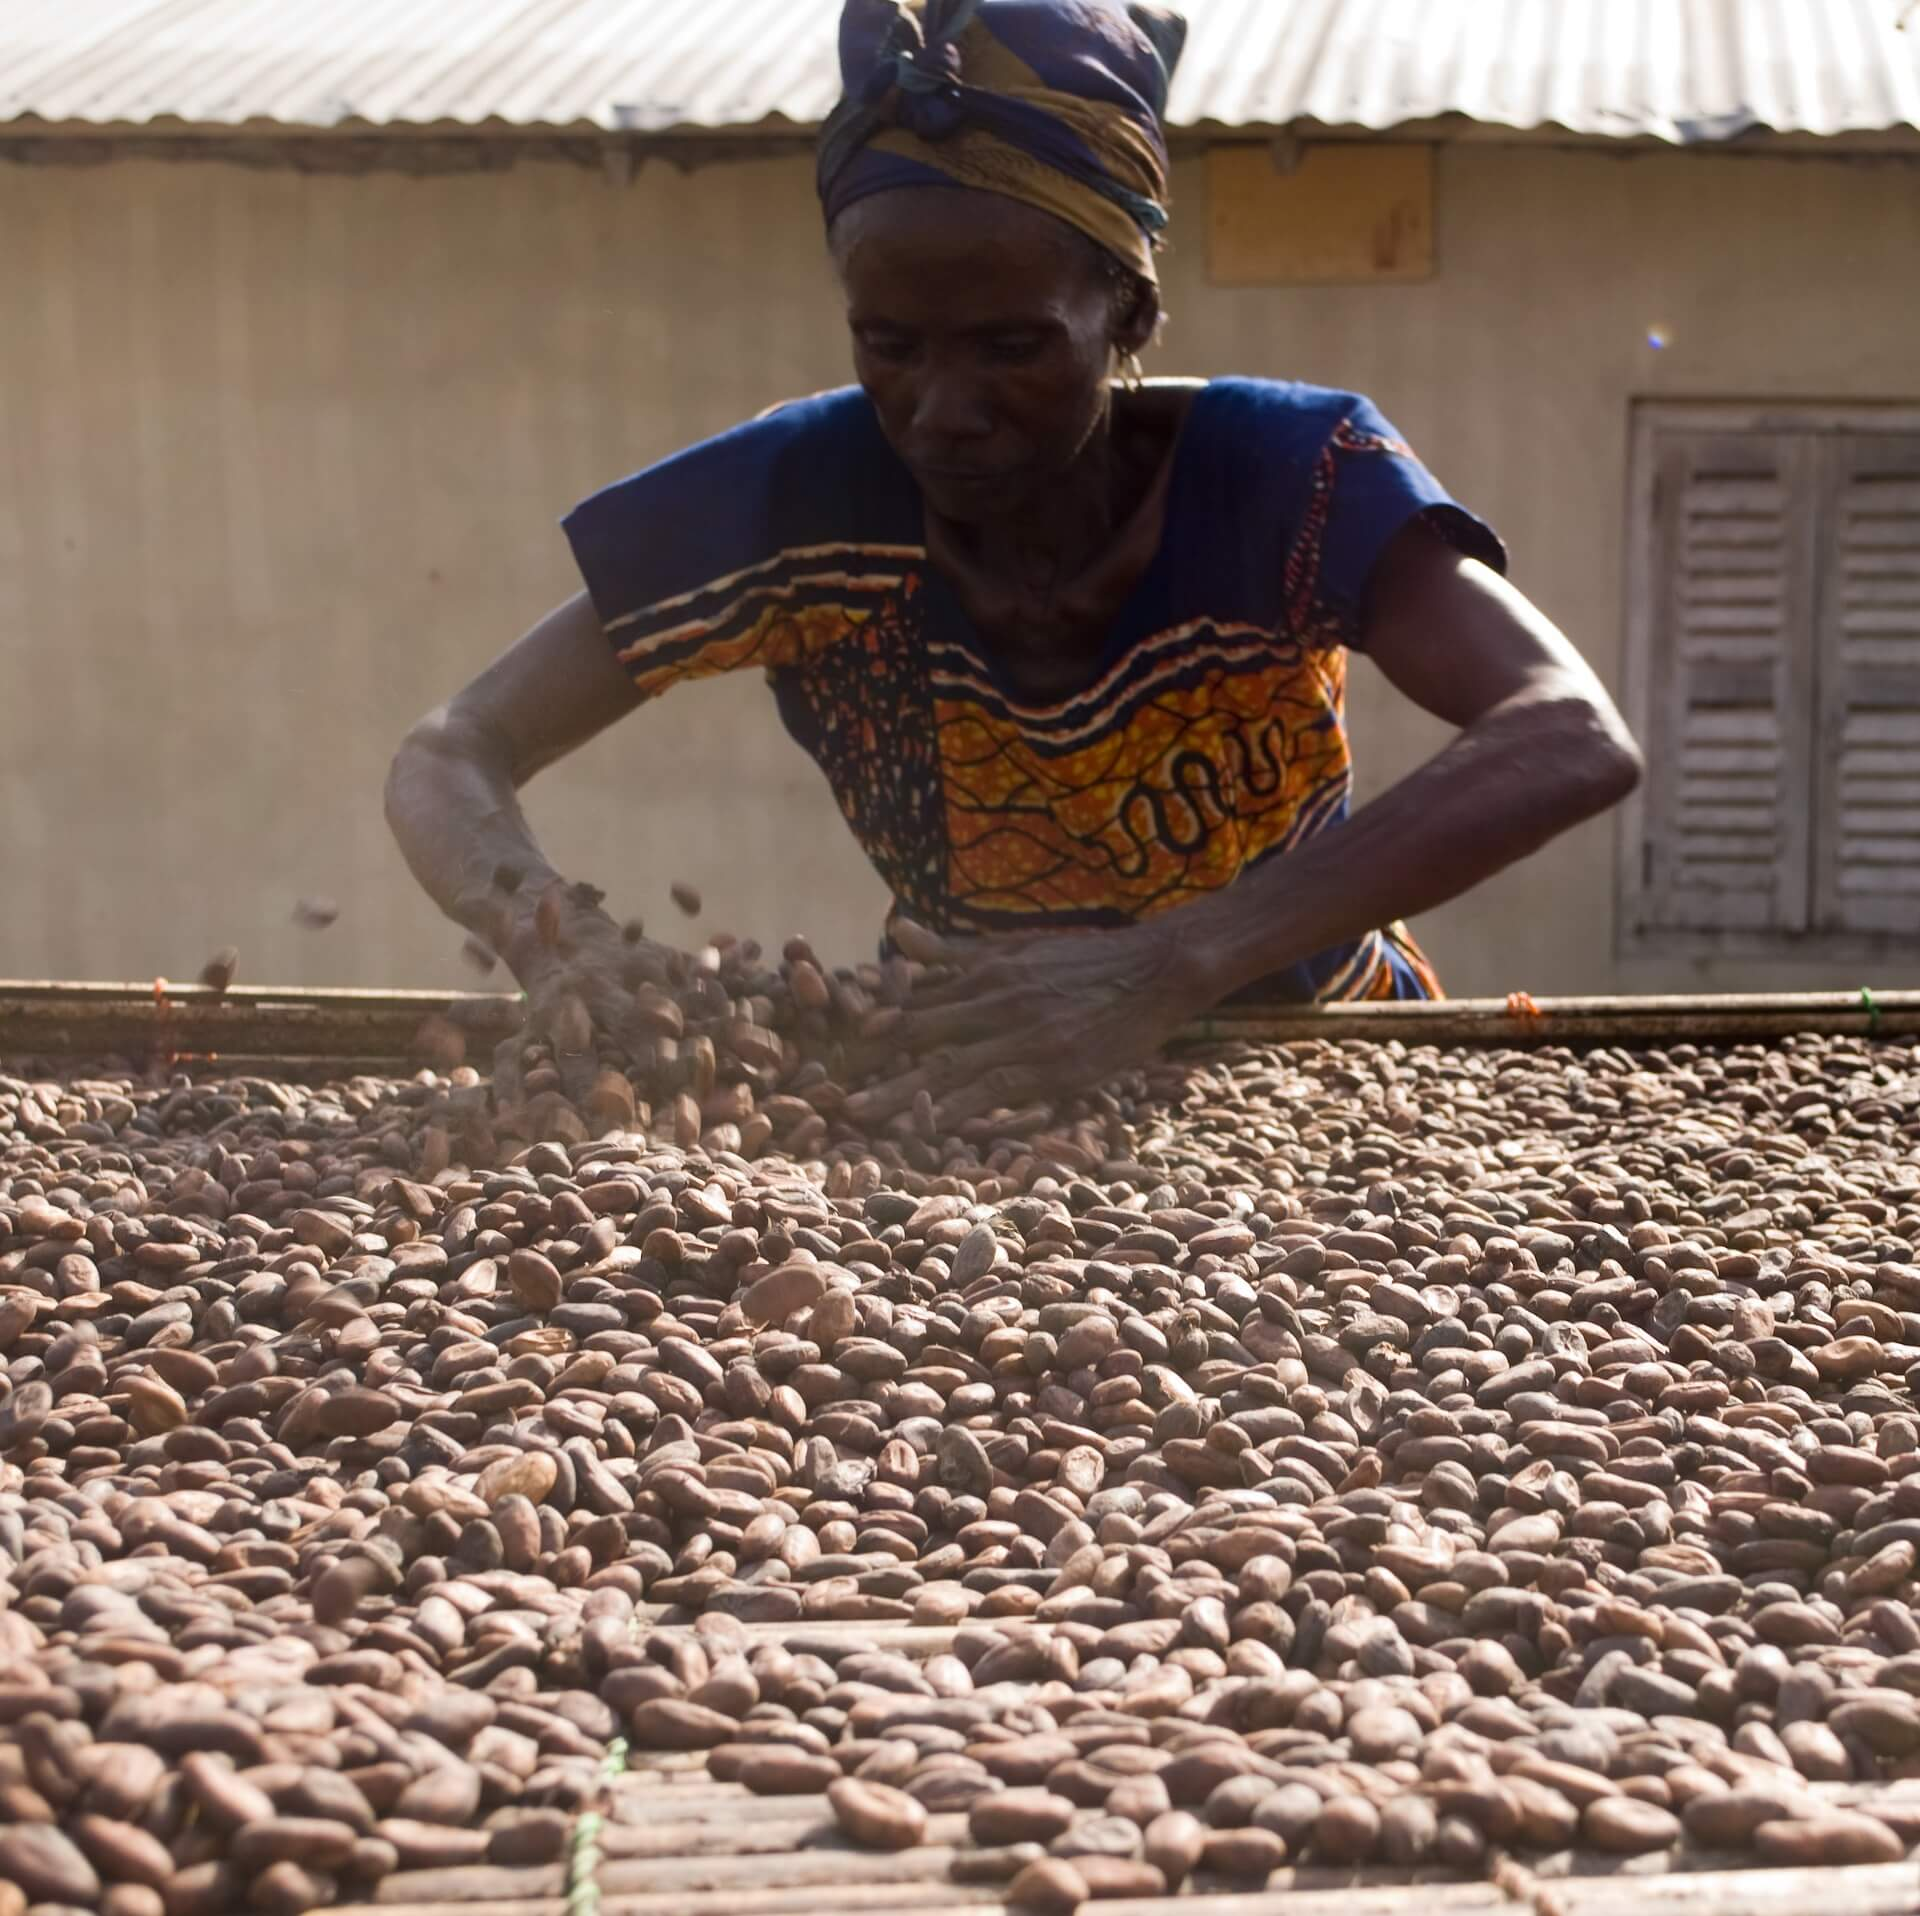 An African woman drying cacao beans out in the sun